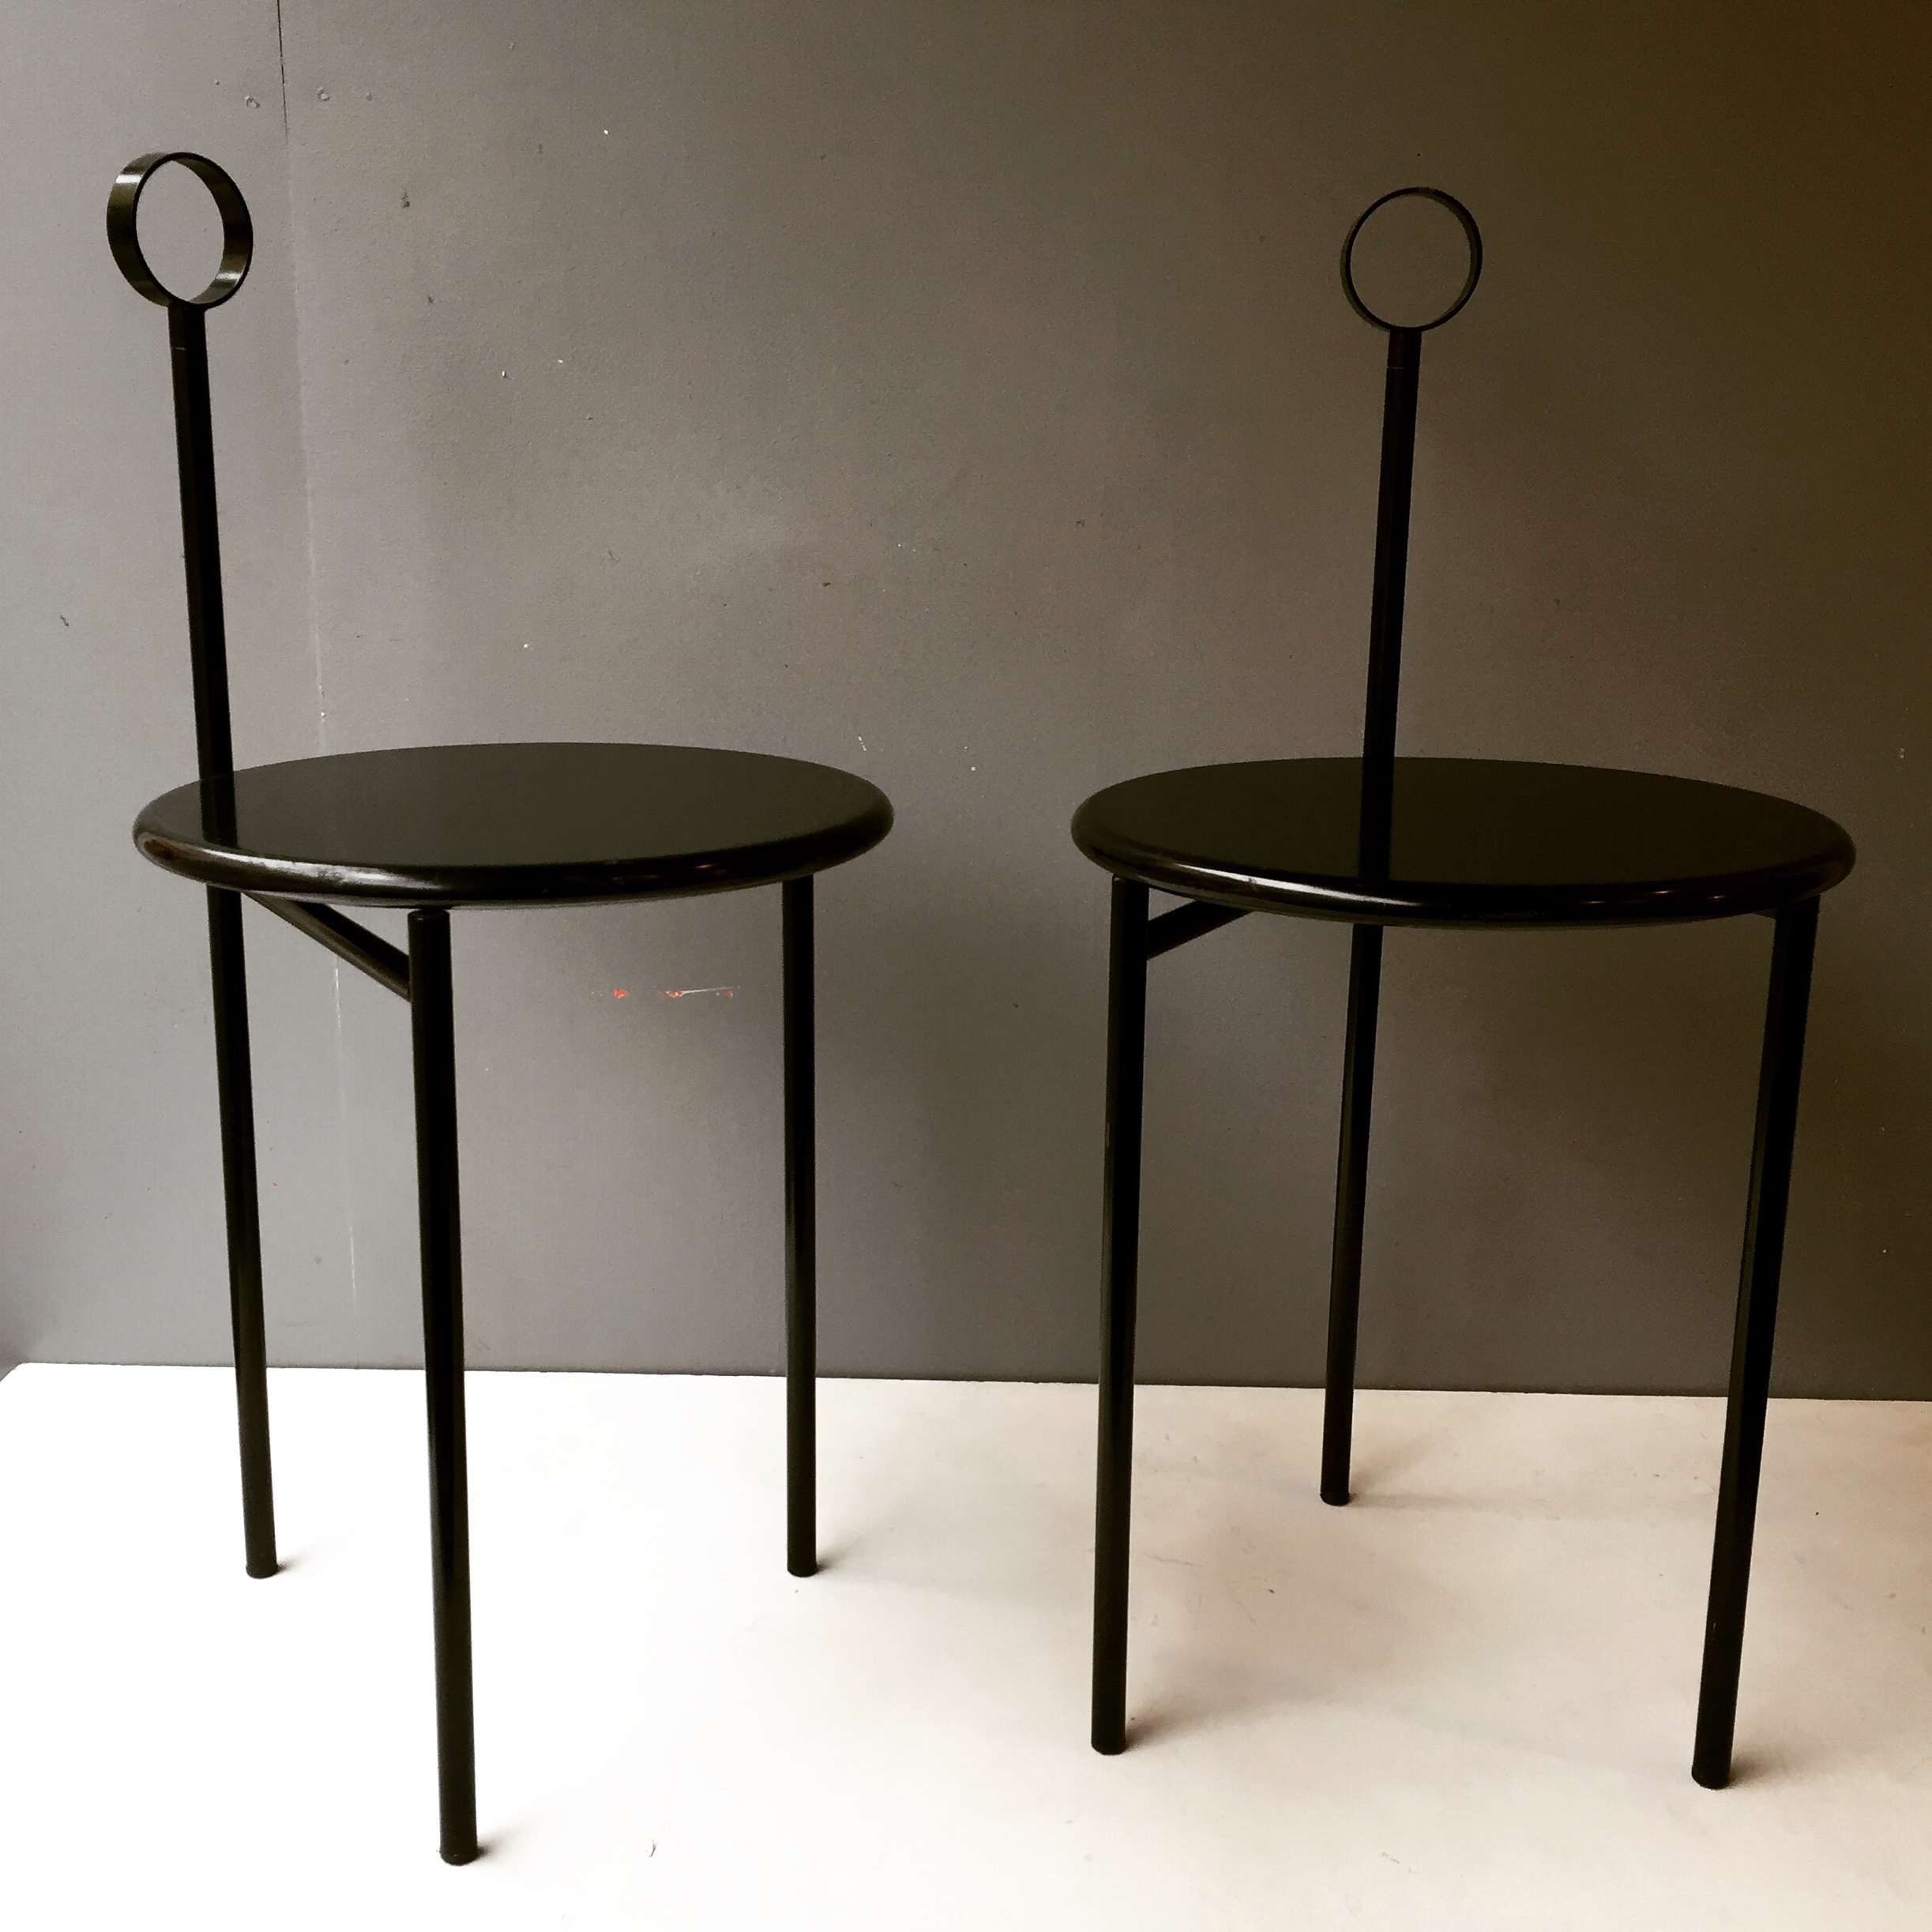 chaises mickville philippe starck ed driade 1982 paul bert serpette. Black Bedroom Furniture Sets. Home Design Ideas